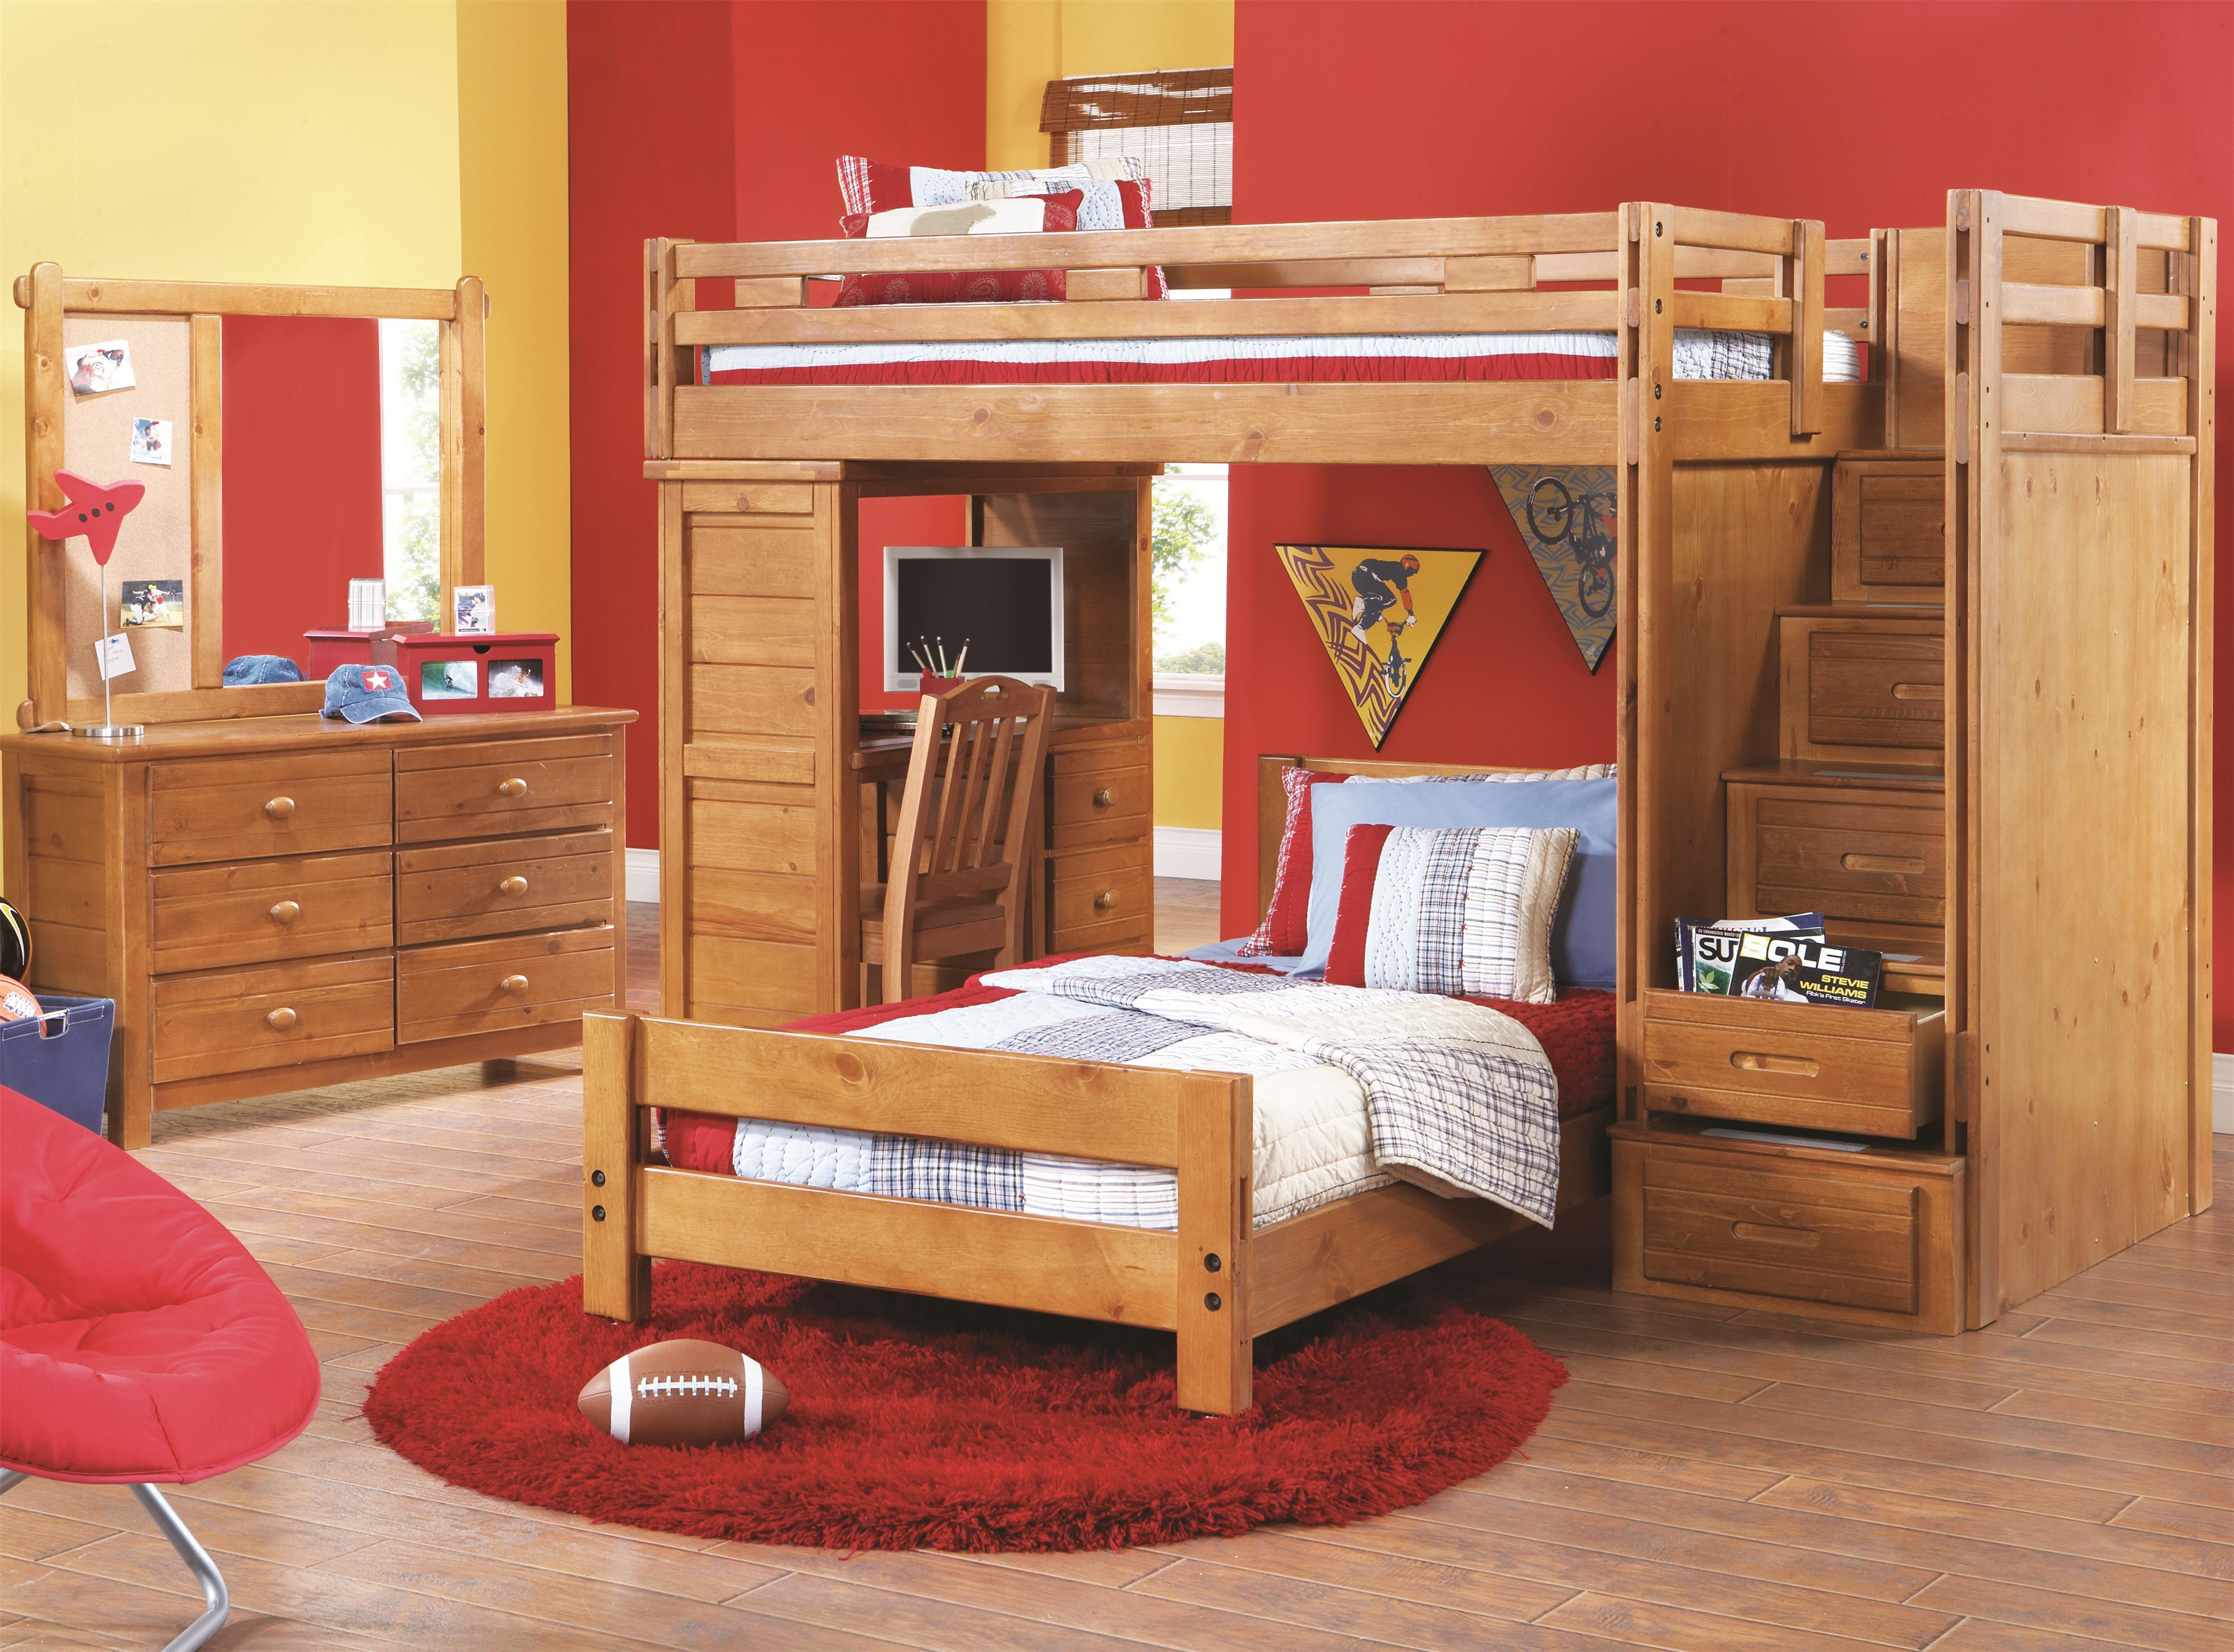 Canyon Bunk Bed Cheaper Than Retail Price Buy Clothing Accessories And Lifestyle Products For Women Men